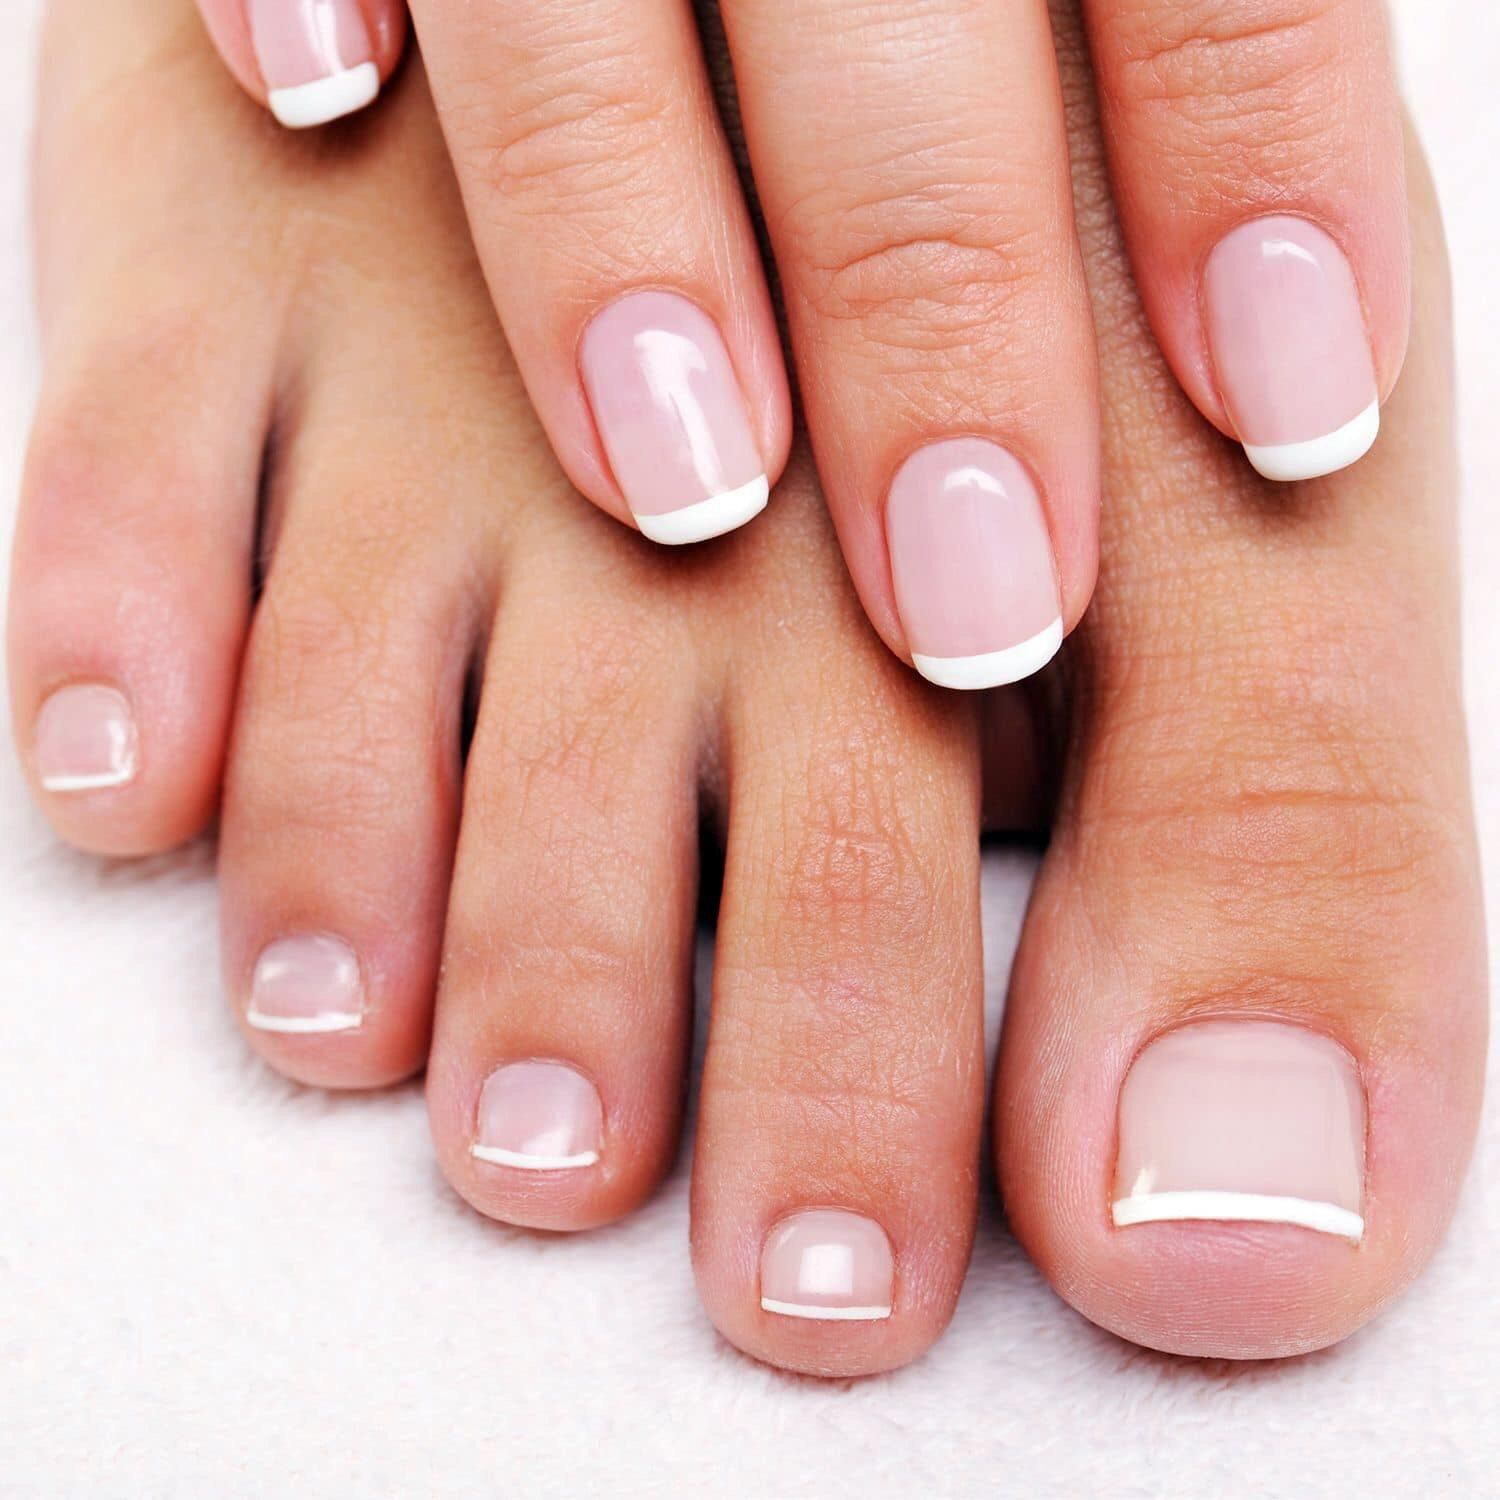 french tips designs pedicure and manicure